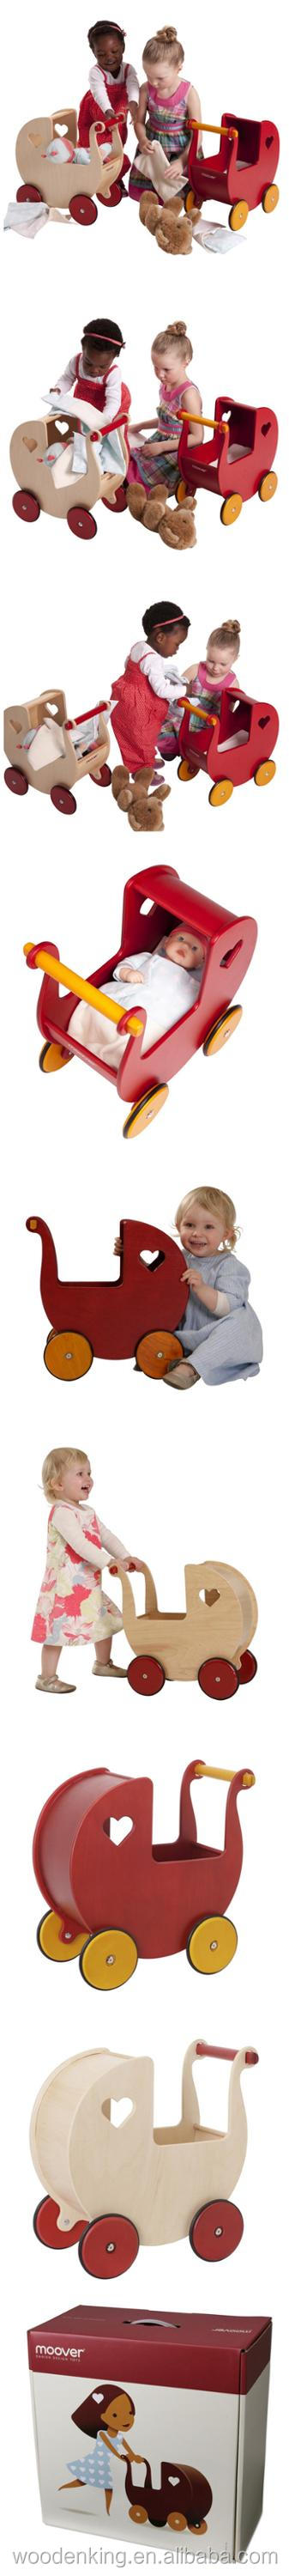 Made In Yiwu China Factory Suppliers Wholesale Mini Children Walkers Wooden Small Carts Push Baby Kids Trolley Walker Cart Toy